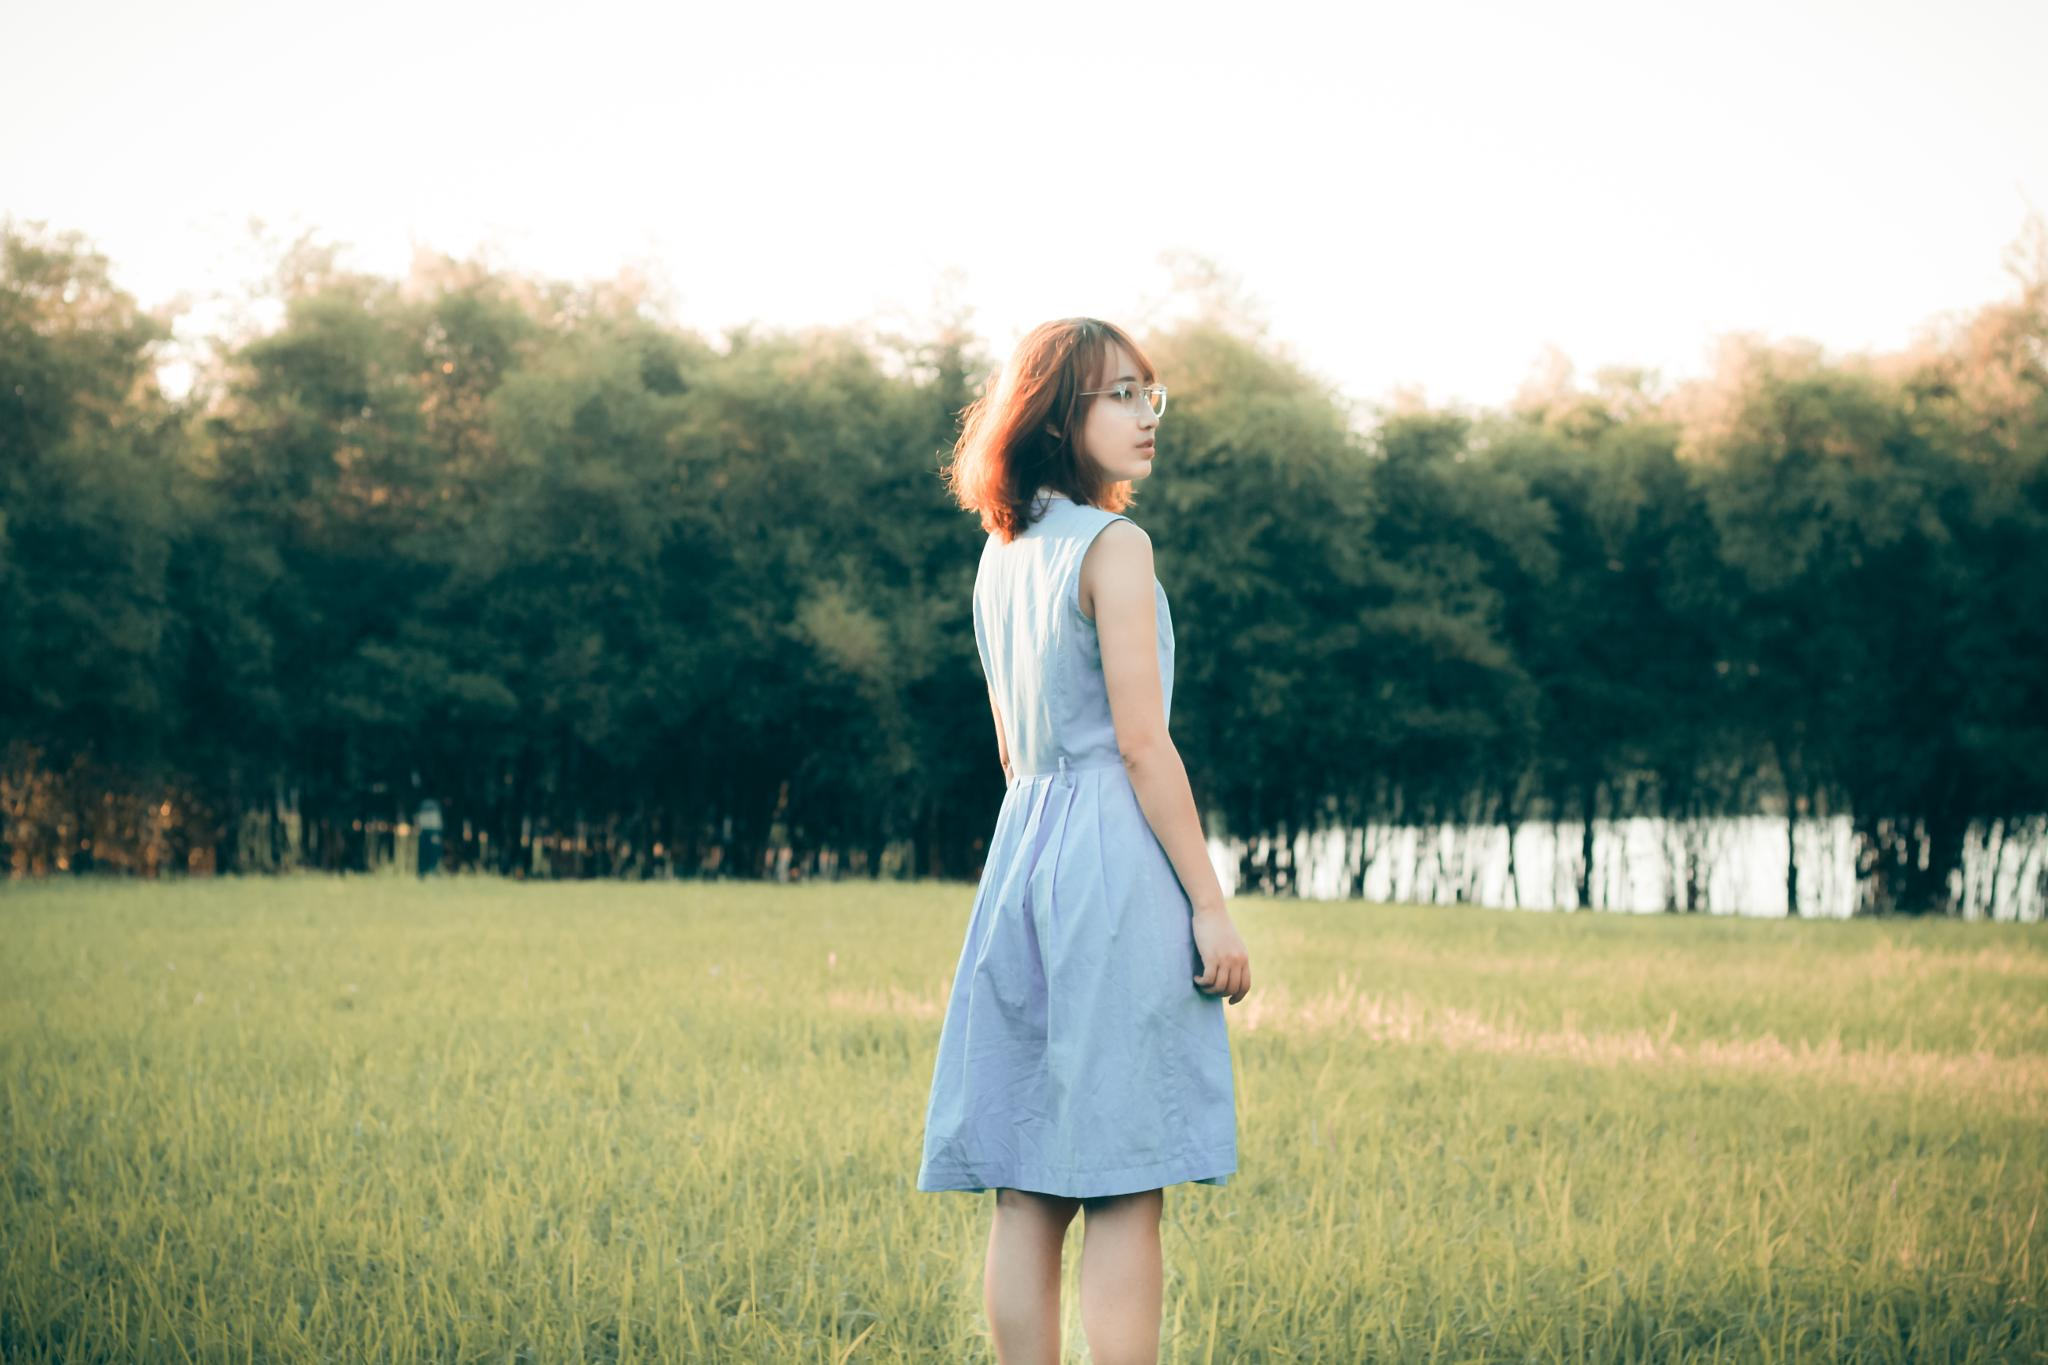 Lonely girl by robekhoi